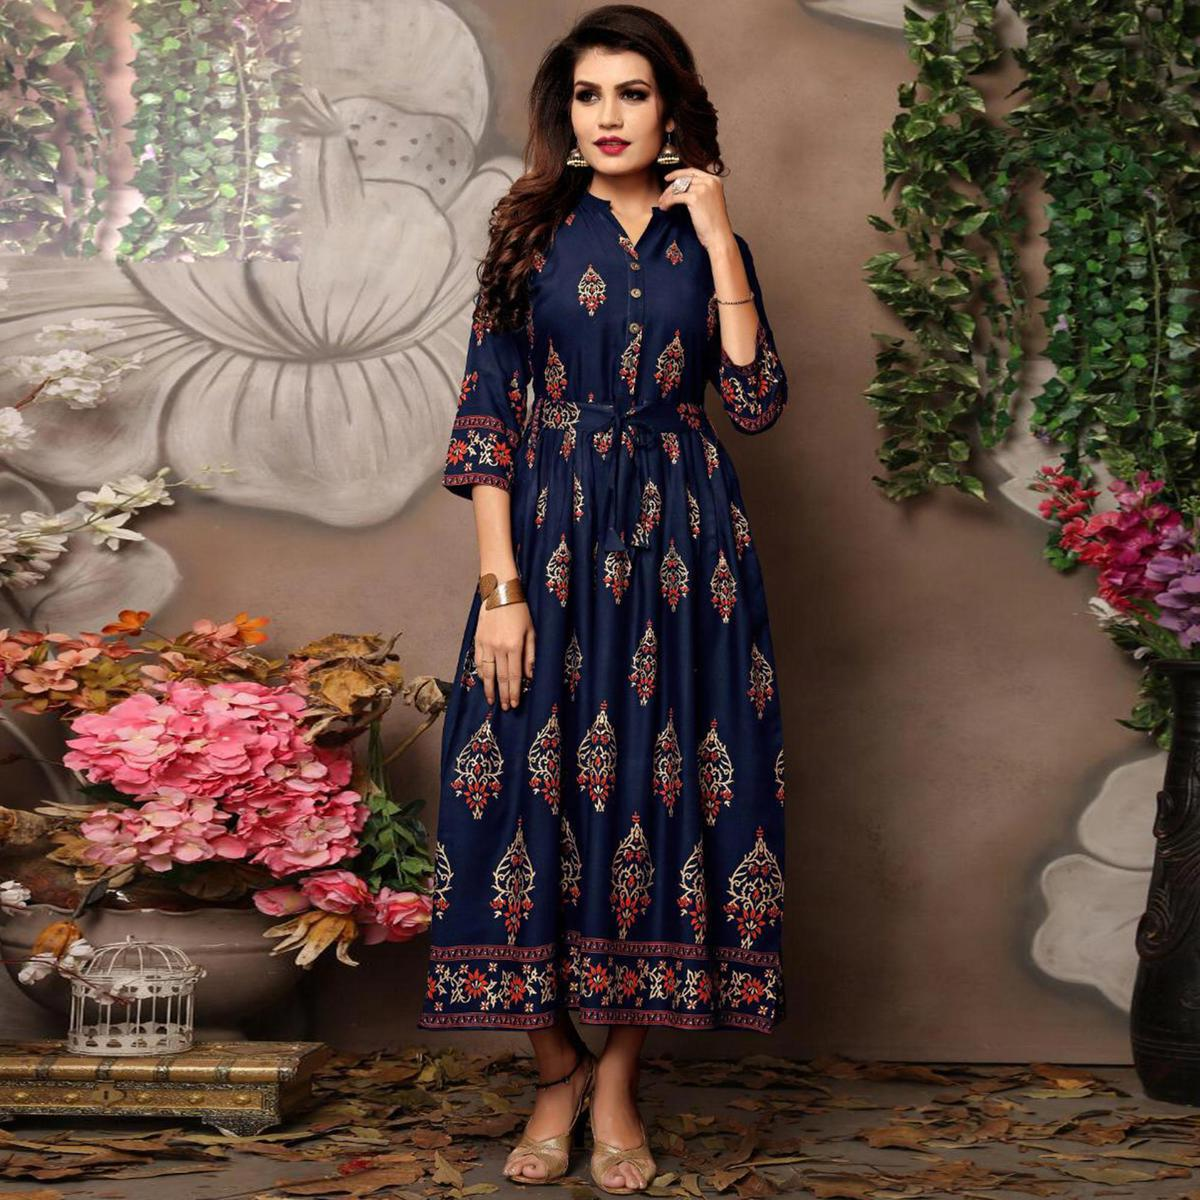 Glowing Navy Blue Colored Party Wear Foil Block Printed Rayon Kurti